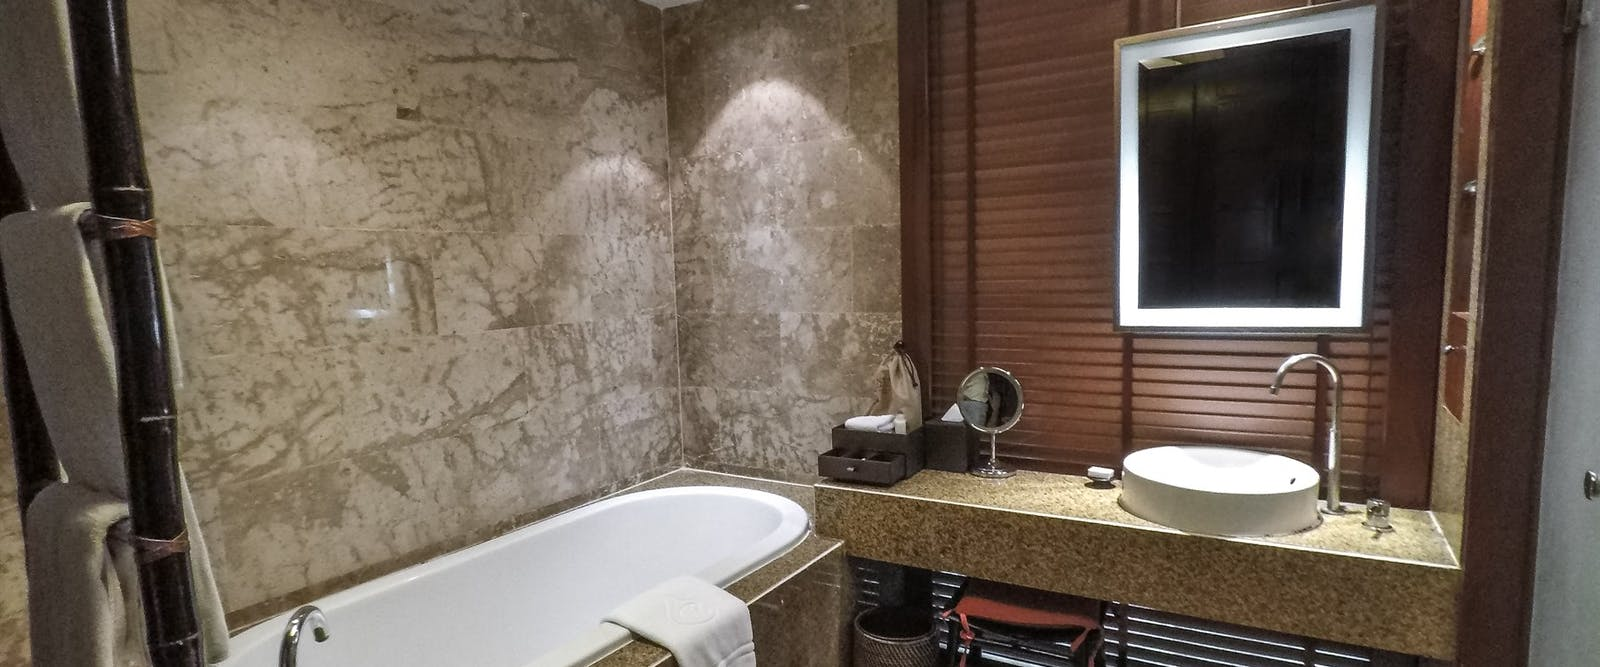 bathroom at Centara Grand Beach Resort & Villas Krabi